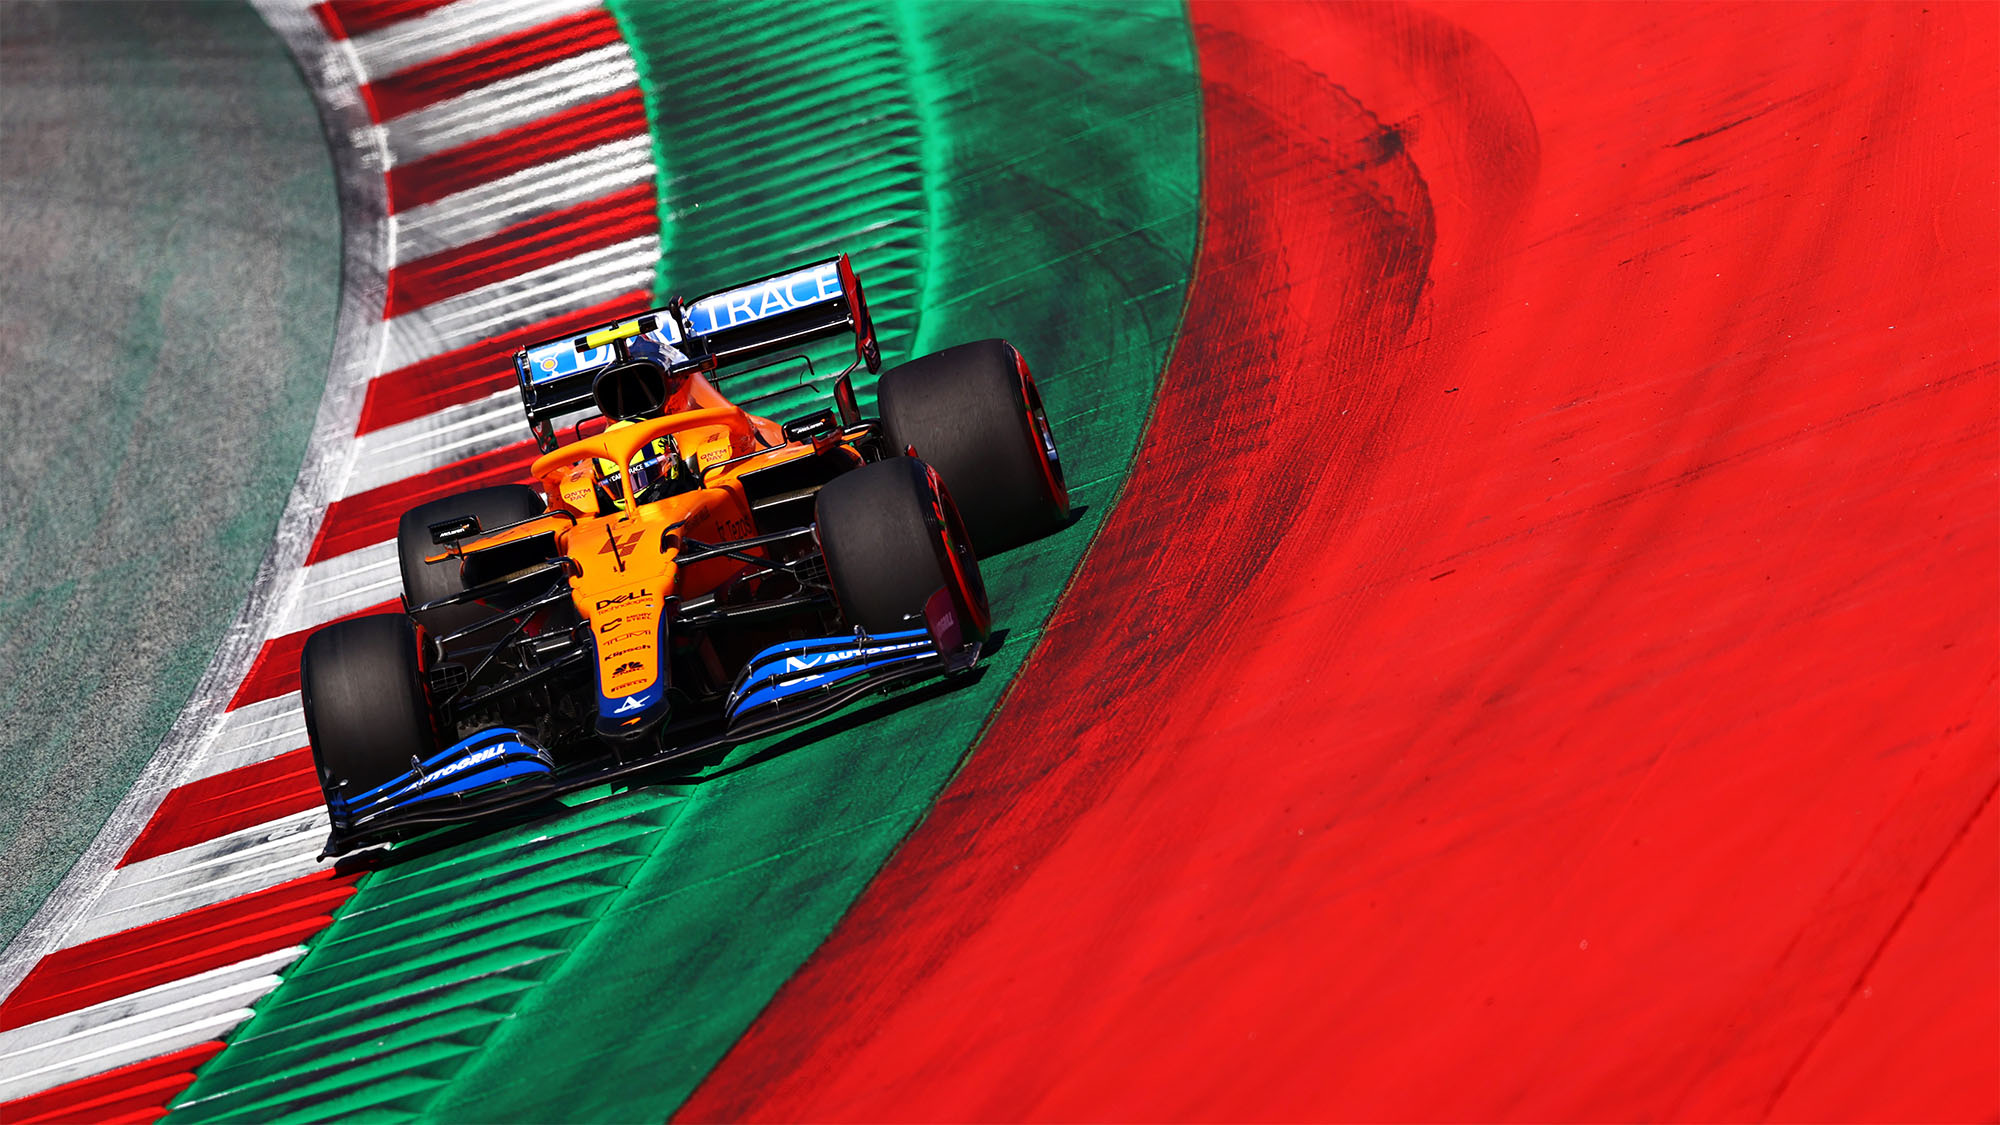 SPIELBERG, AUSTRIA - JUNE 26: Lando Norris of Great Britain driving the (4) McLaren F1 Team MCL35M Mercedes during qualifying ahead of the F1 Grand Prix of Styria at Red Bull Ring on June 26, 2021 in Spielberg, Austria. (Photo by Dan Istitene - Formula 1/Formula 1 via Getty Images)